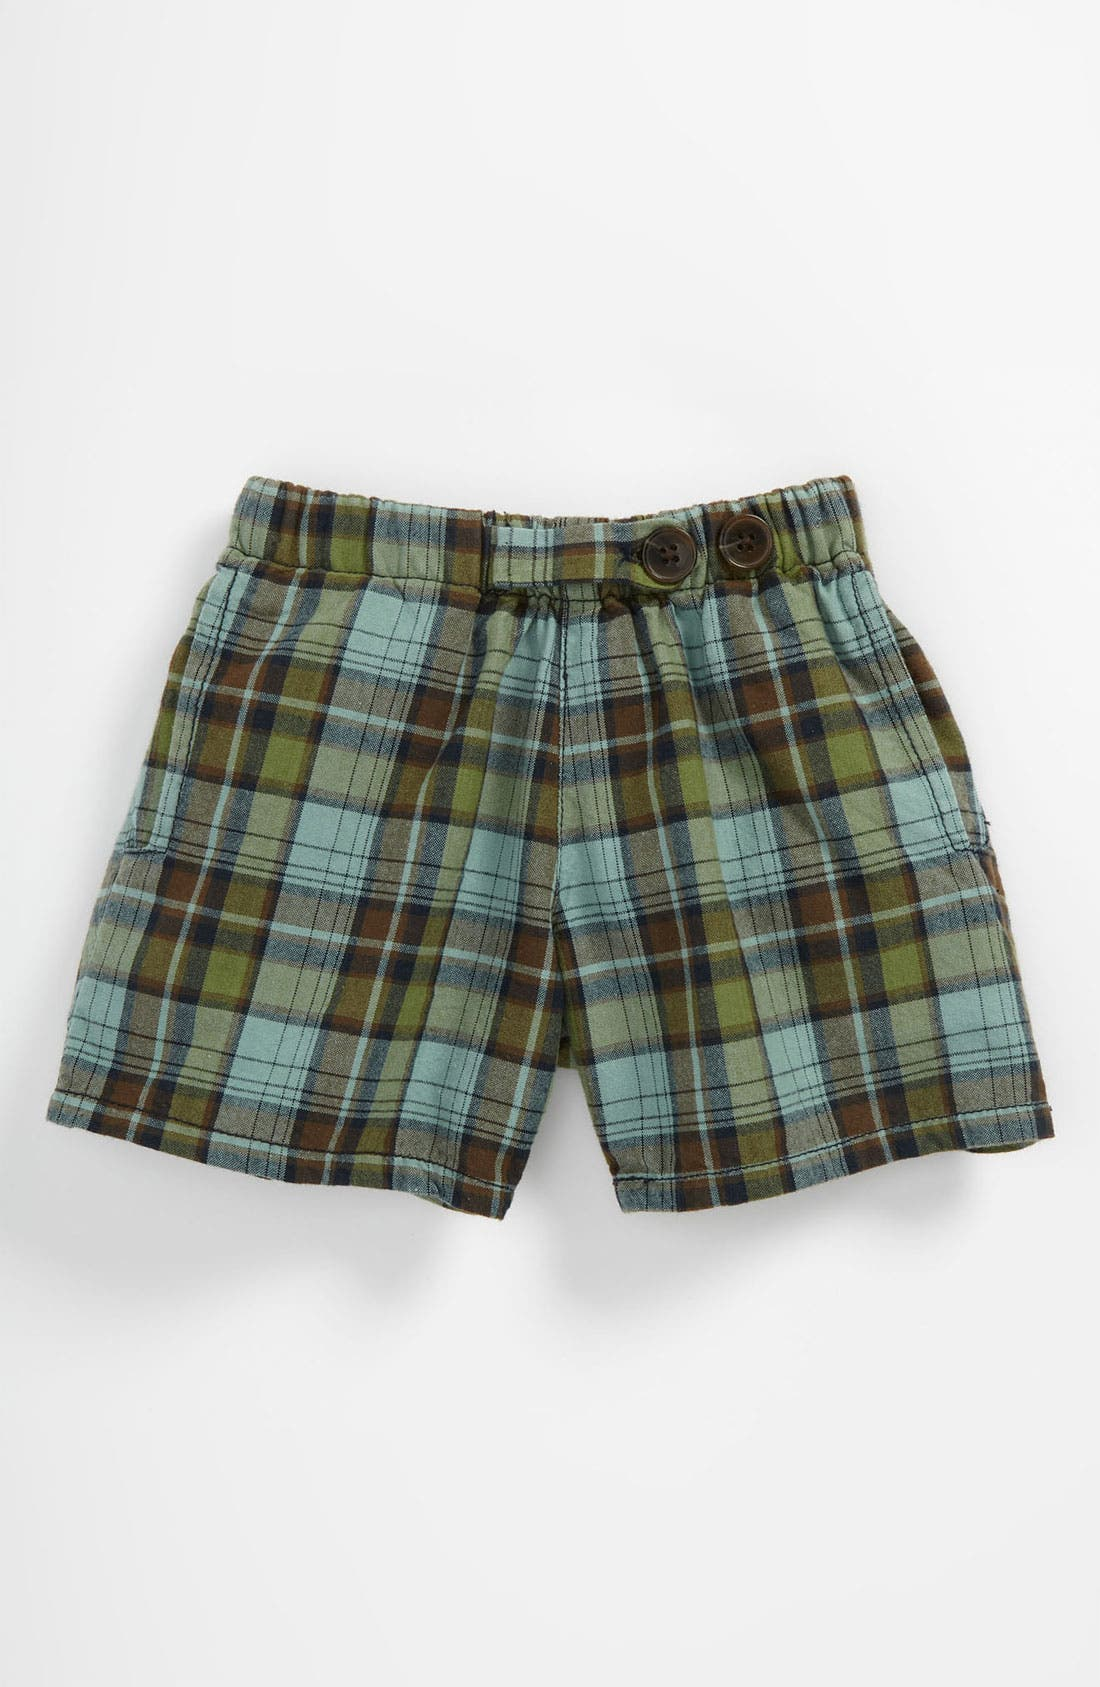 Main Image - Peek 'Bangalore - Havasu Plaid' Shorts (Baby)